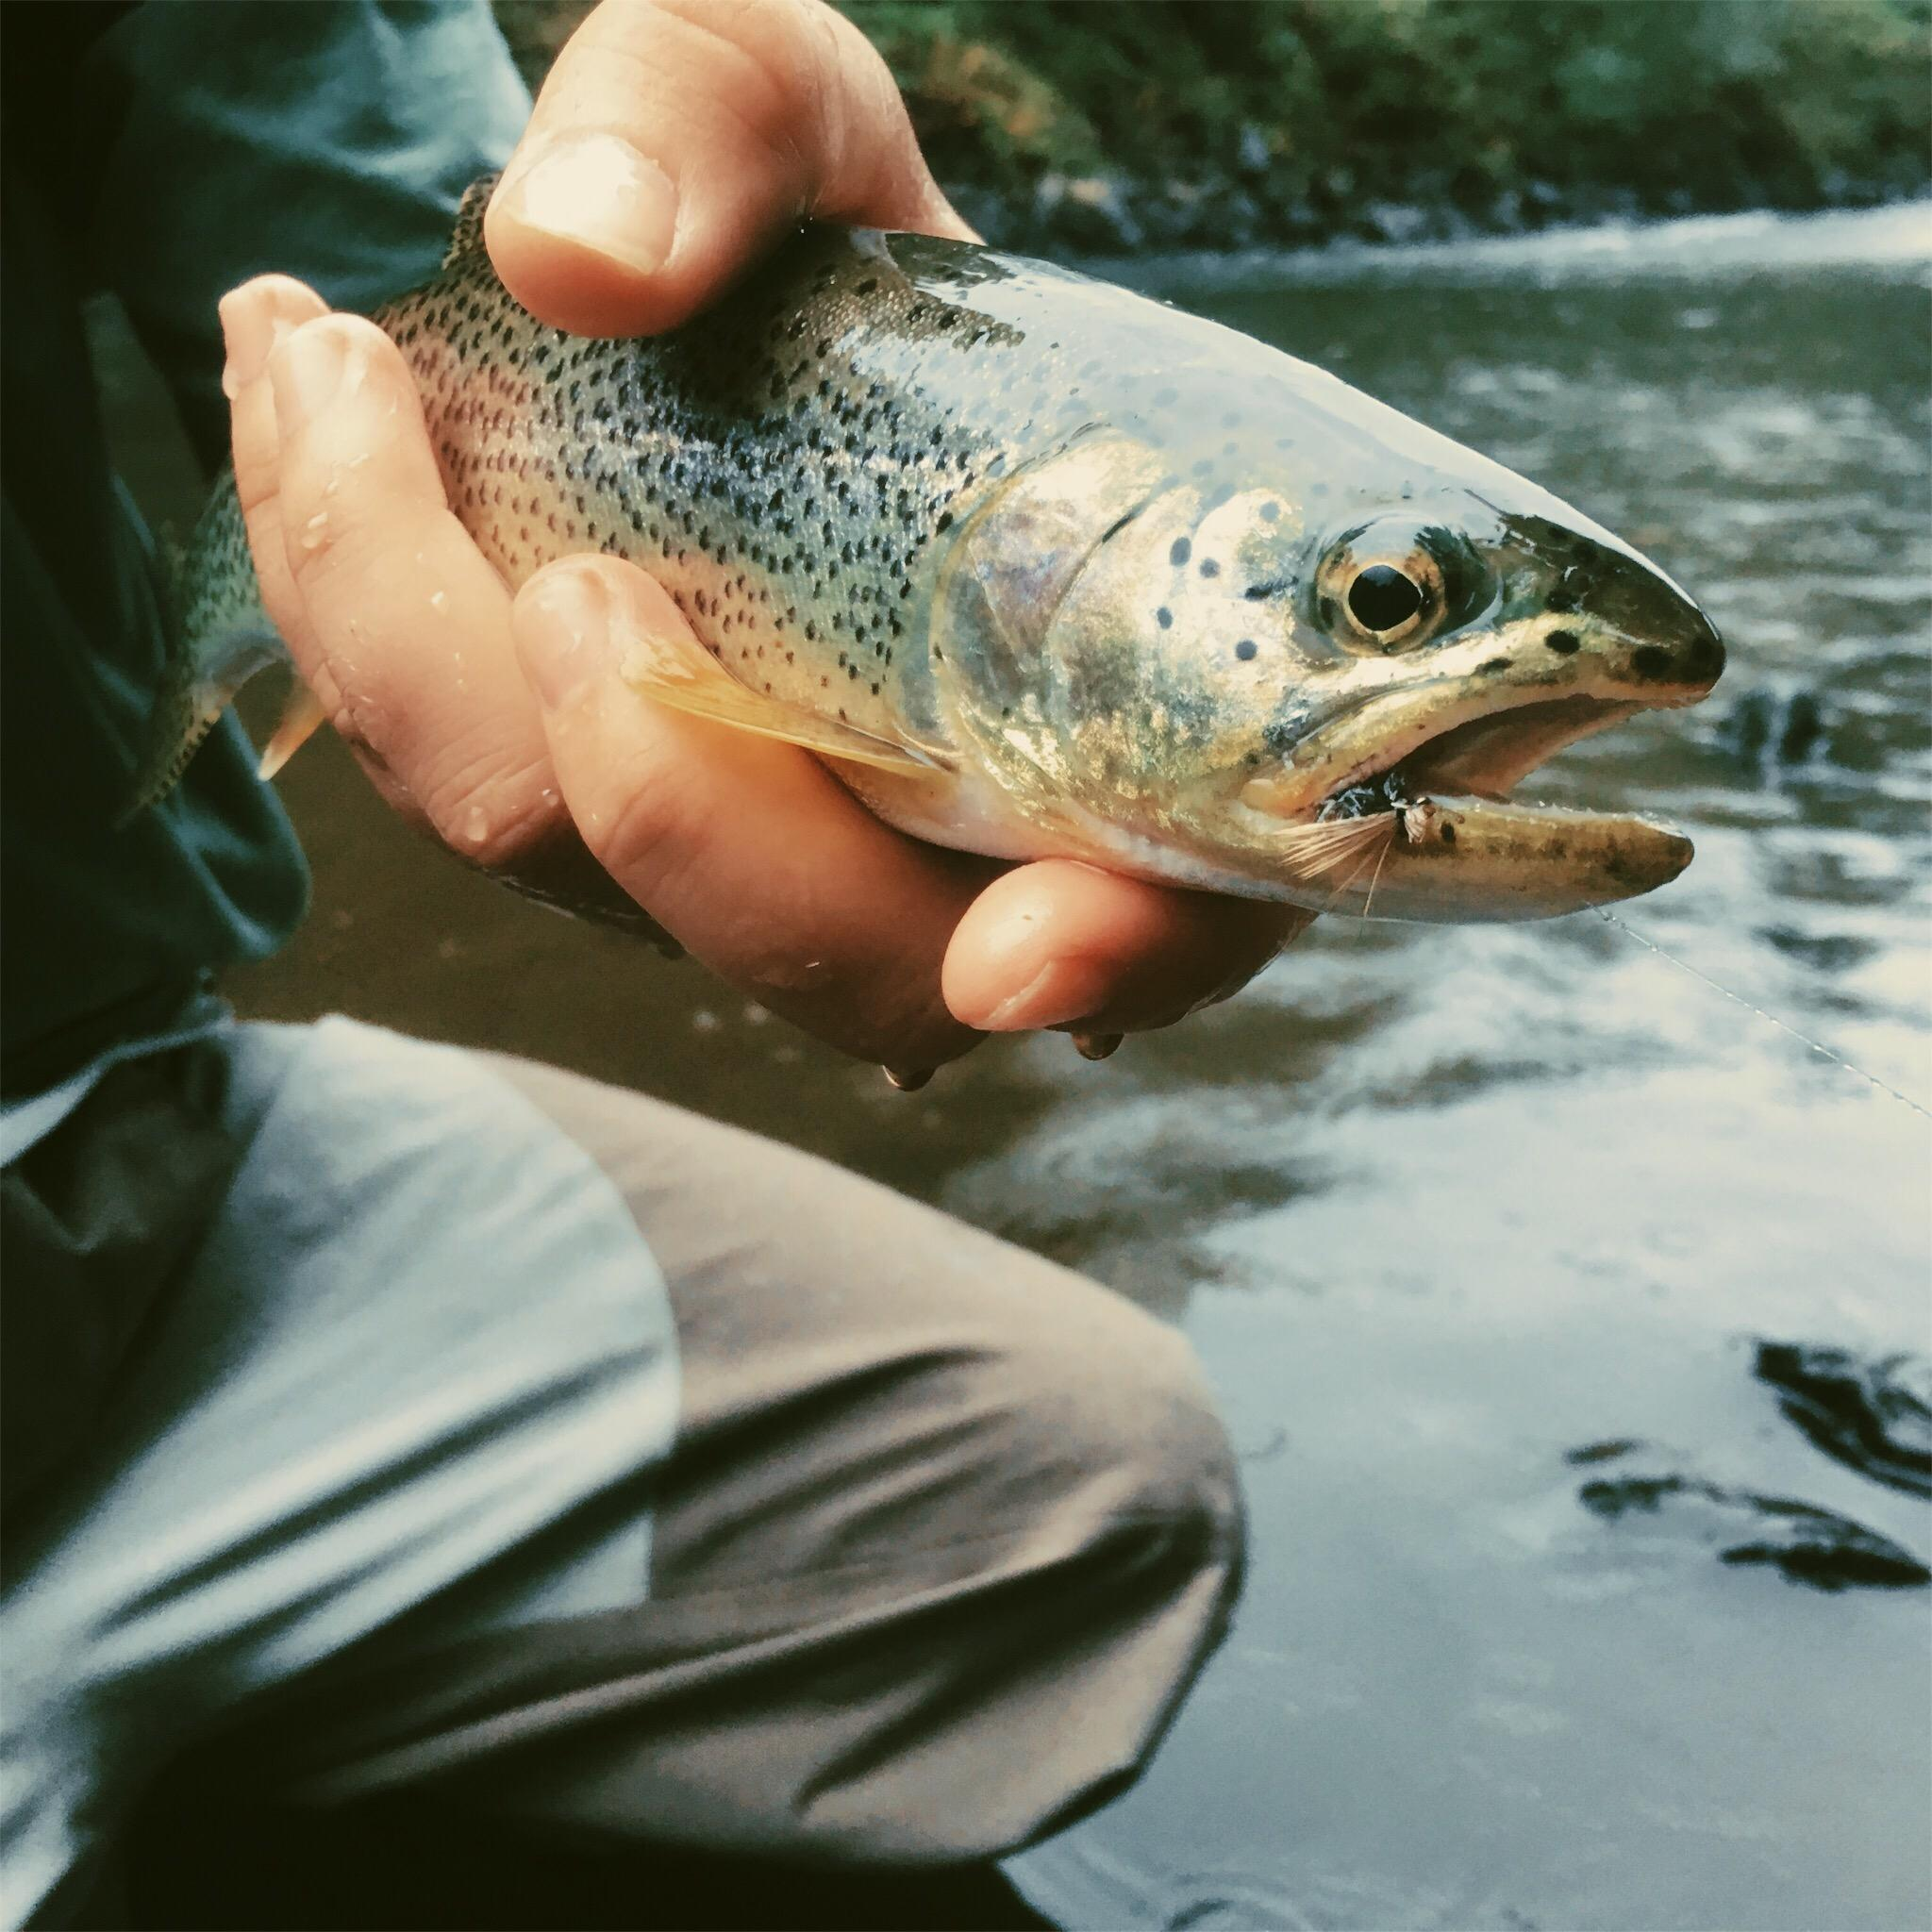 PNW fly fishing hot spots tested and approved for you!(Image: Zoe Pappas / Seattle Refined){ }